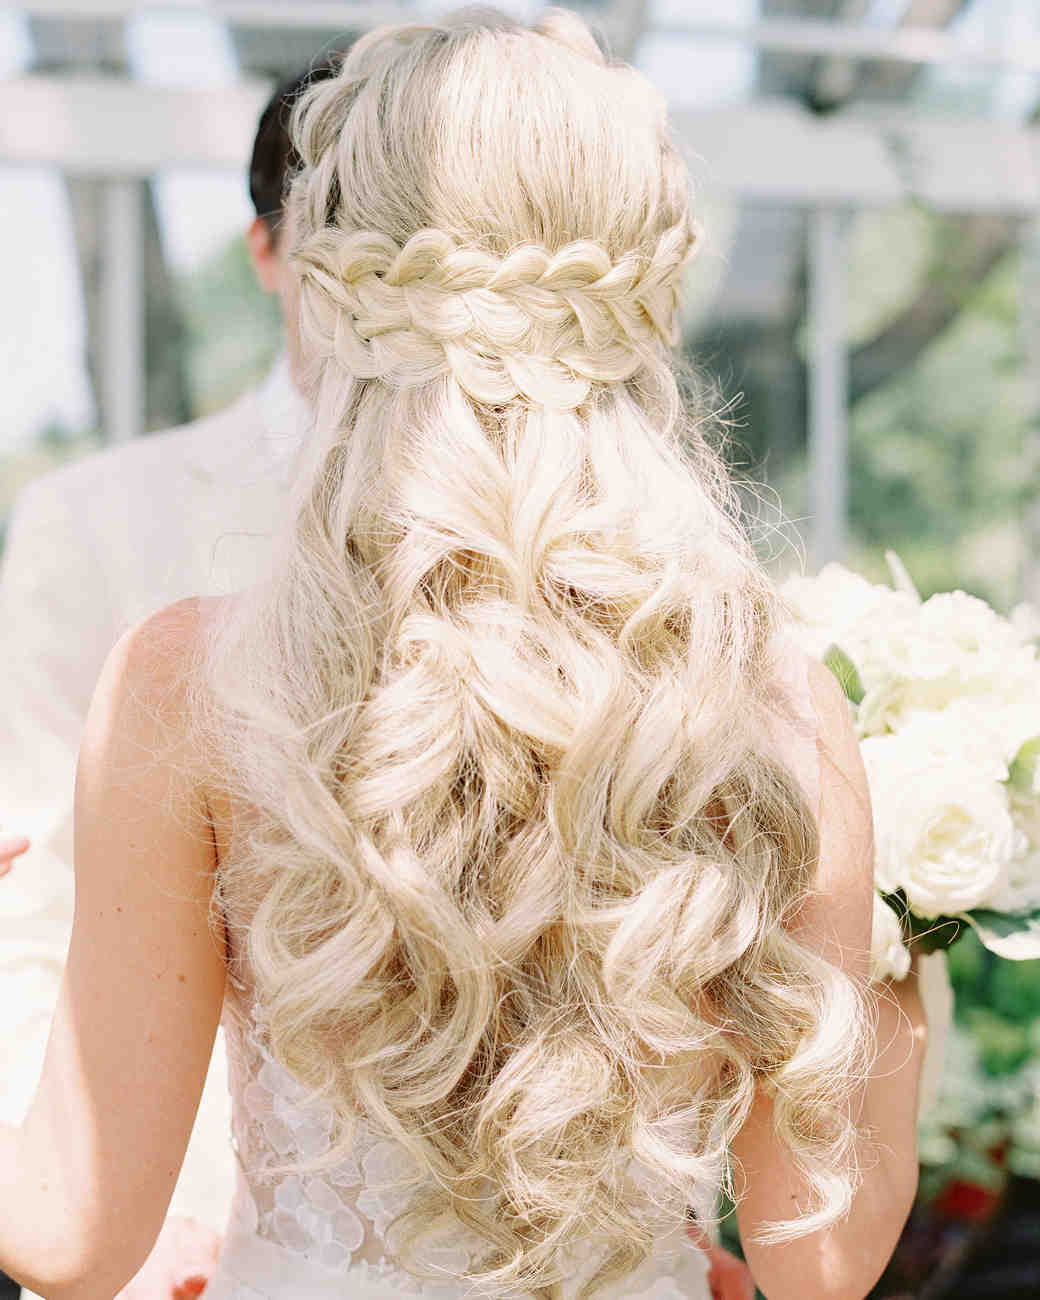 Wedding Hairstyle With Braids: Braided Wedding Hairstyles With Veil